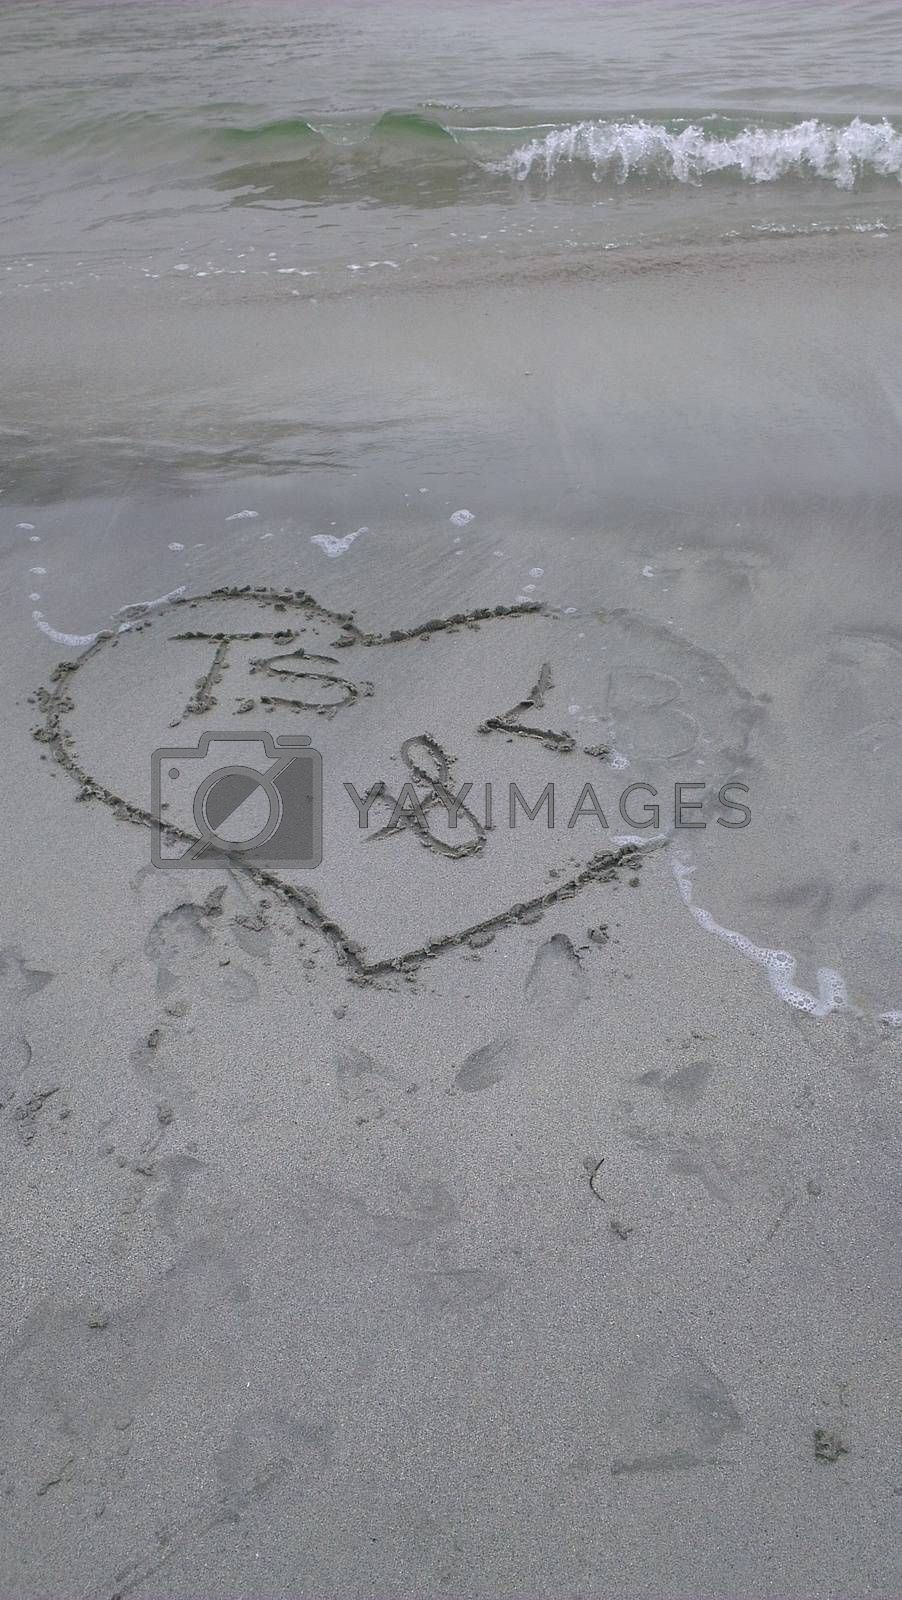 A heart drawn in the sand with initials in it.